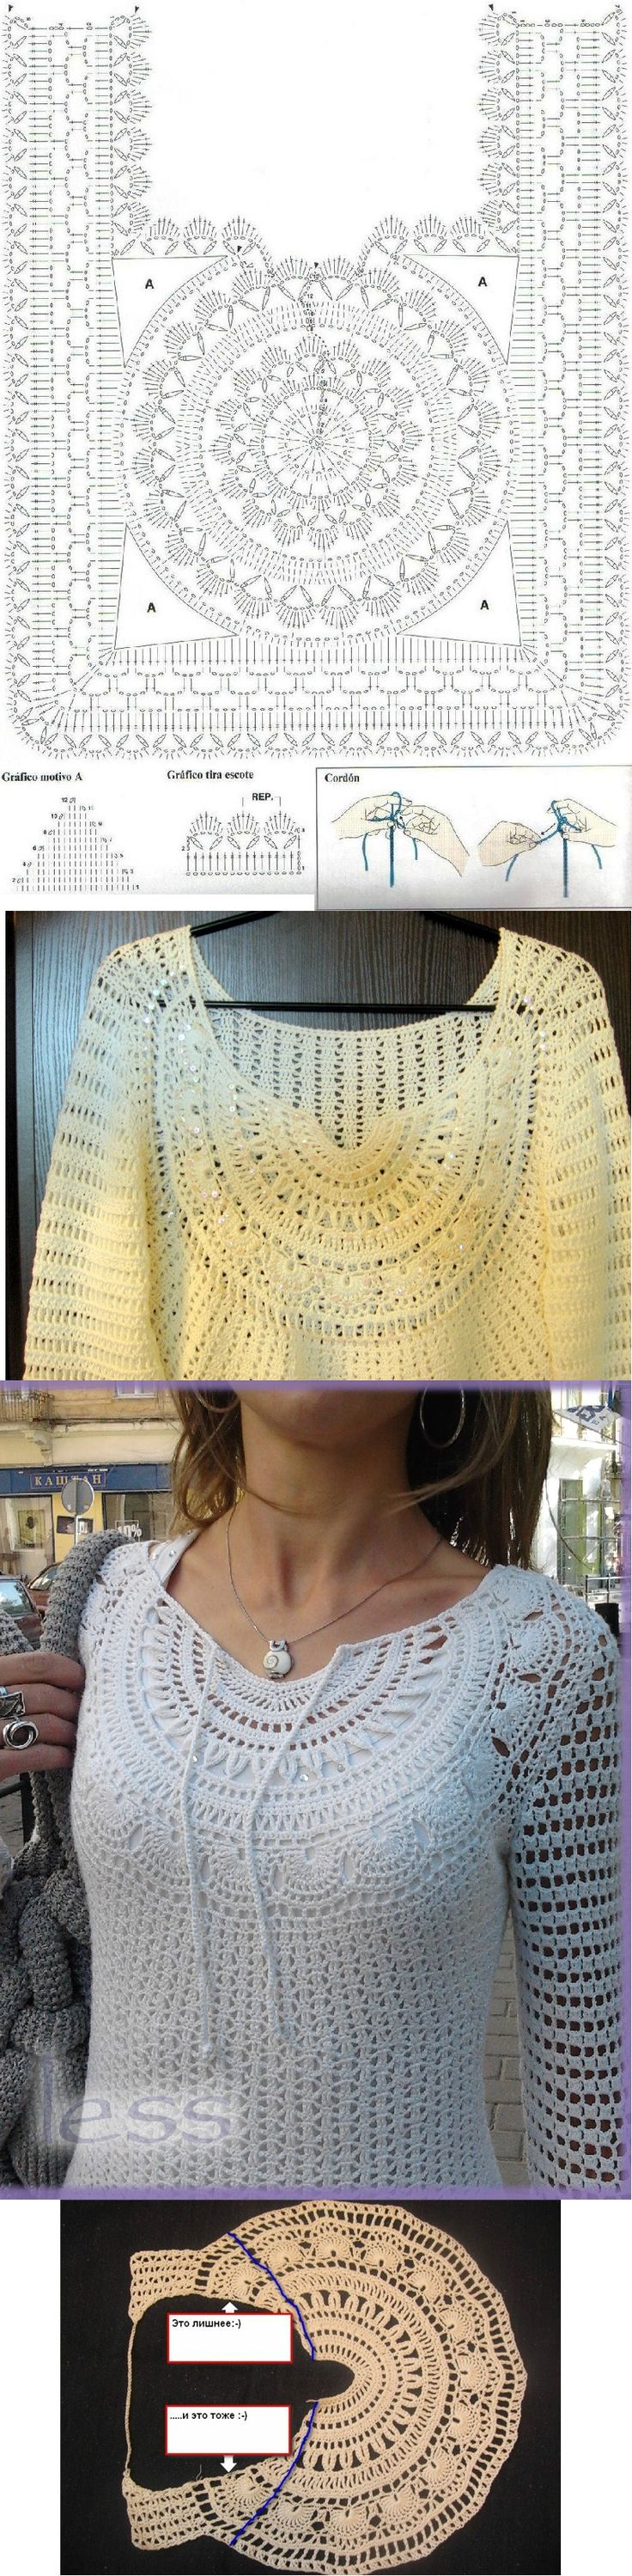 beautiful crocheted top